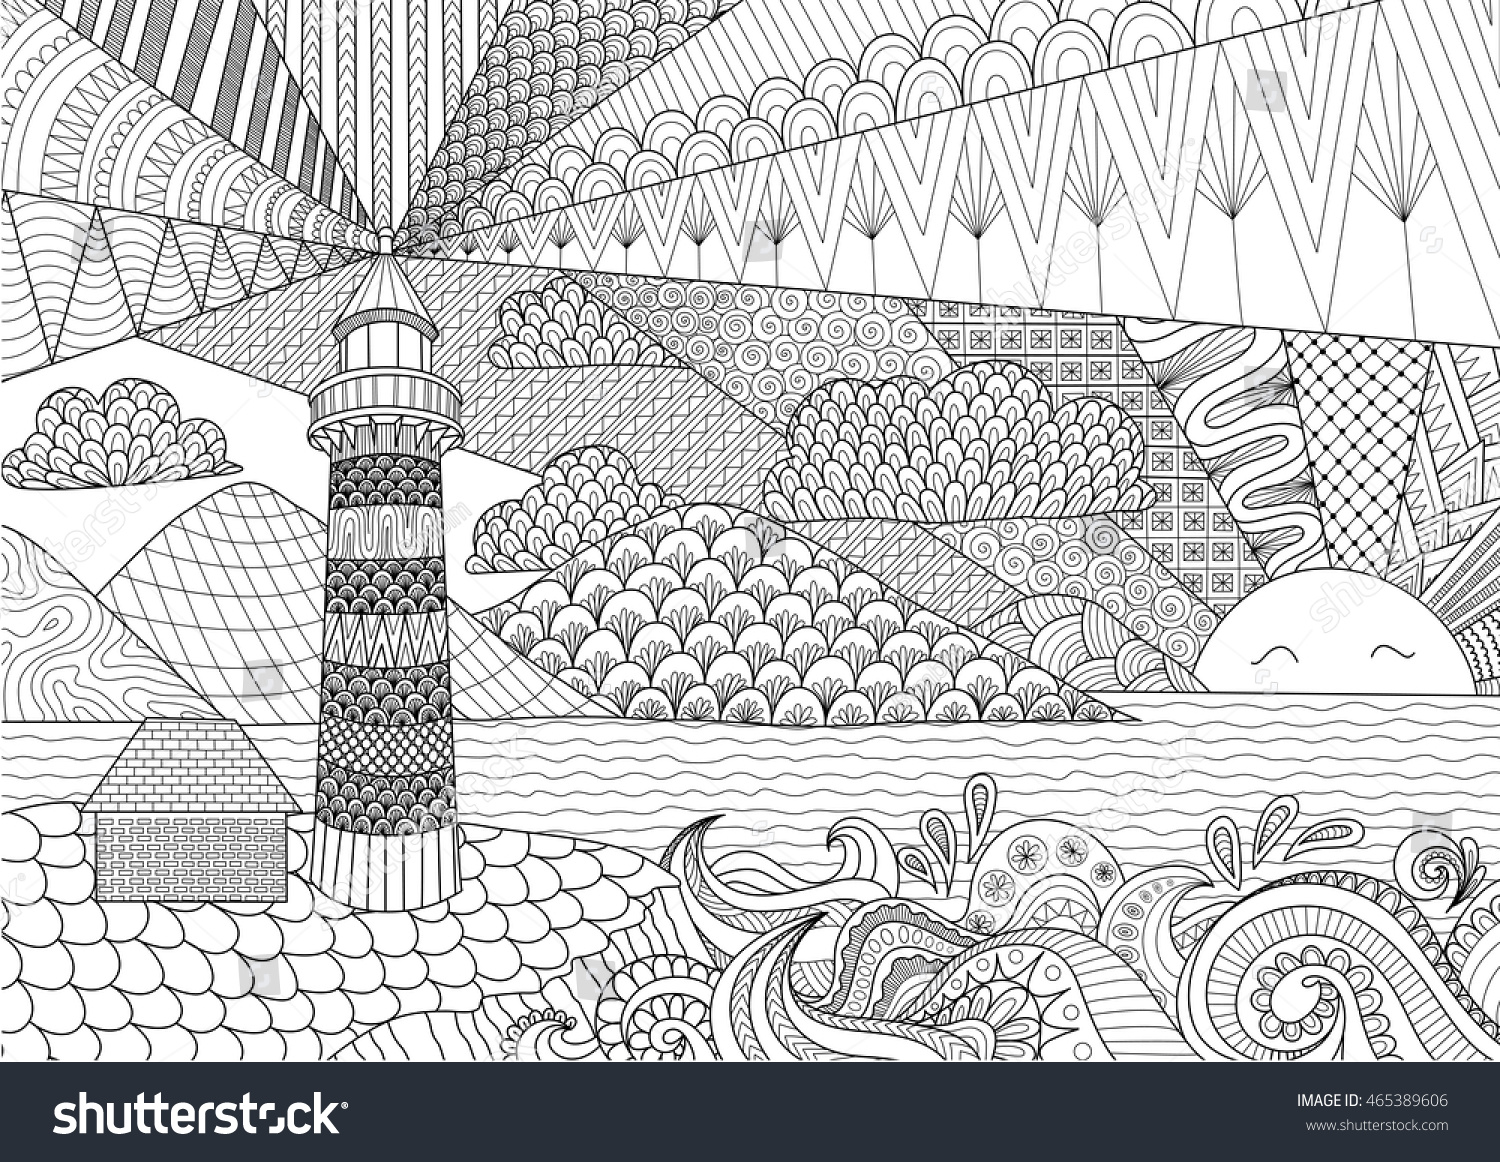 seascape line art design for coloring book for adult anti stress coloring stock vector - Coloring Book Paper Stock